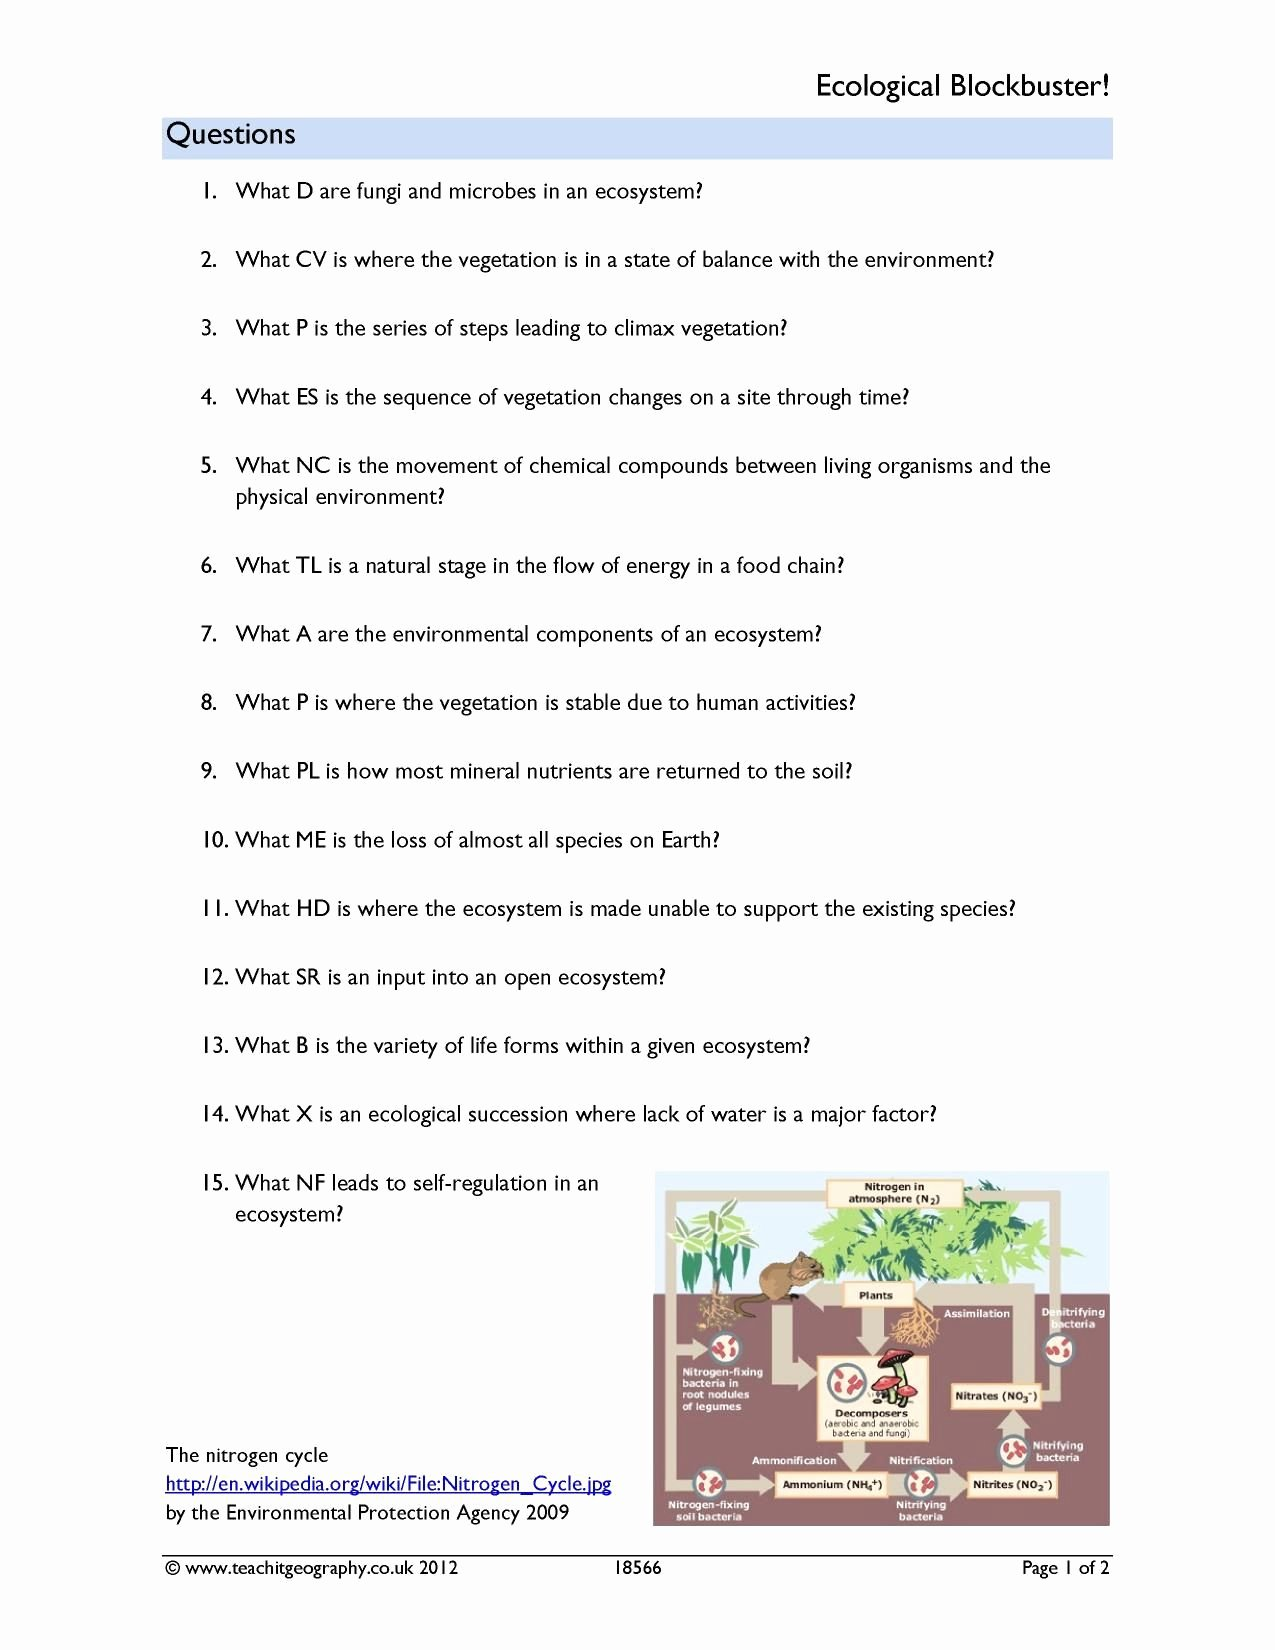 Ecological Succession Worksheet Answers Awesome Ecological Succession Worksheet Answer Key